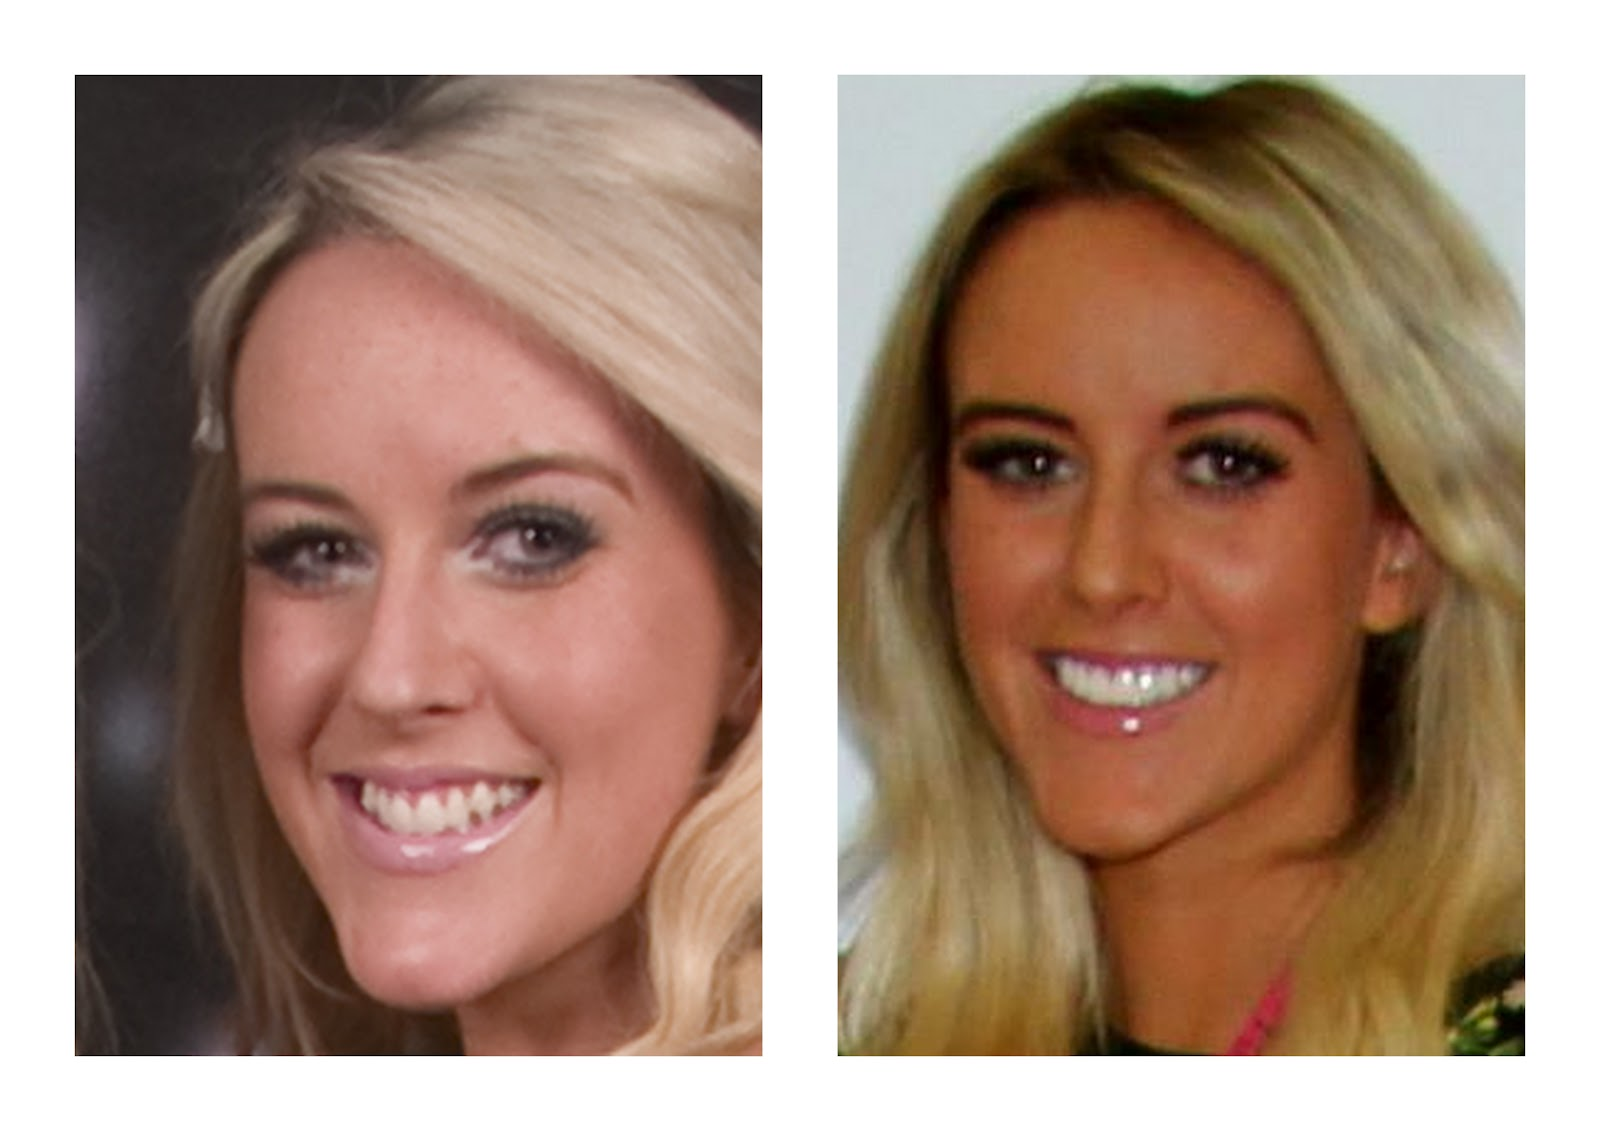 Veneers - The best decision I ever did make Veneers